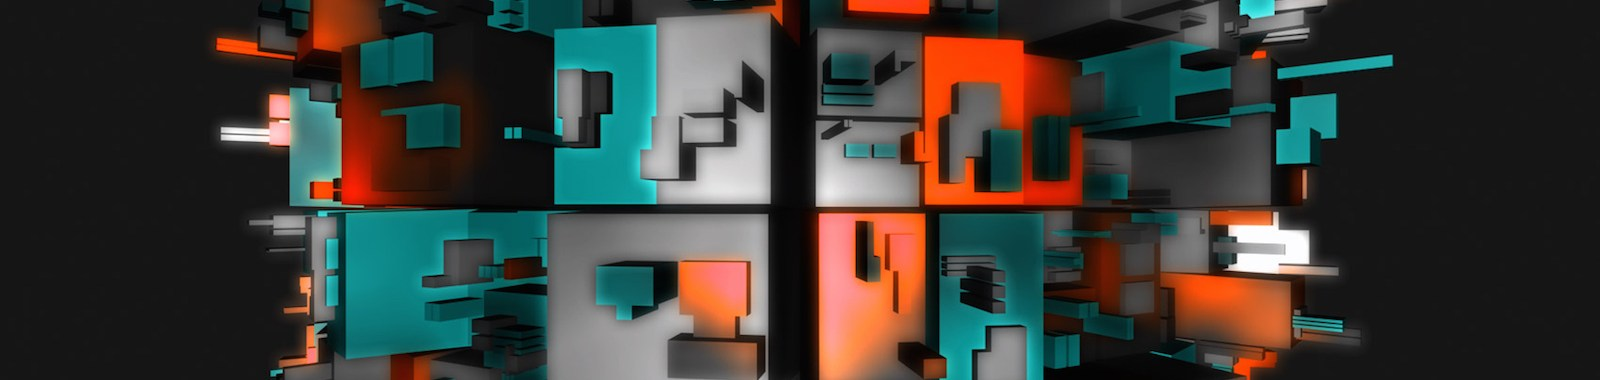 colorful_greeble_cylinder